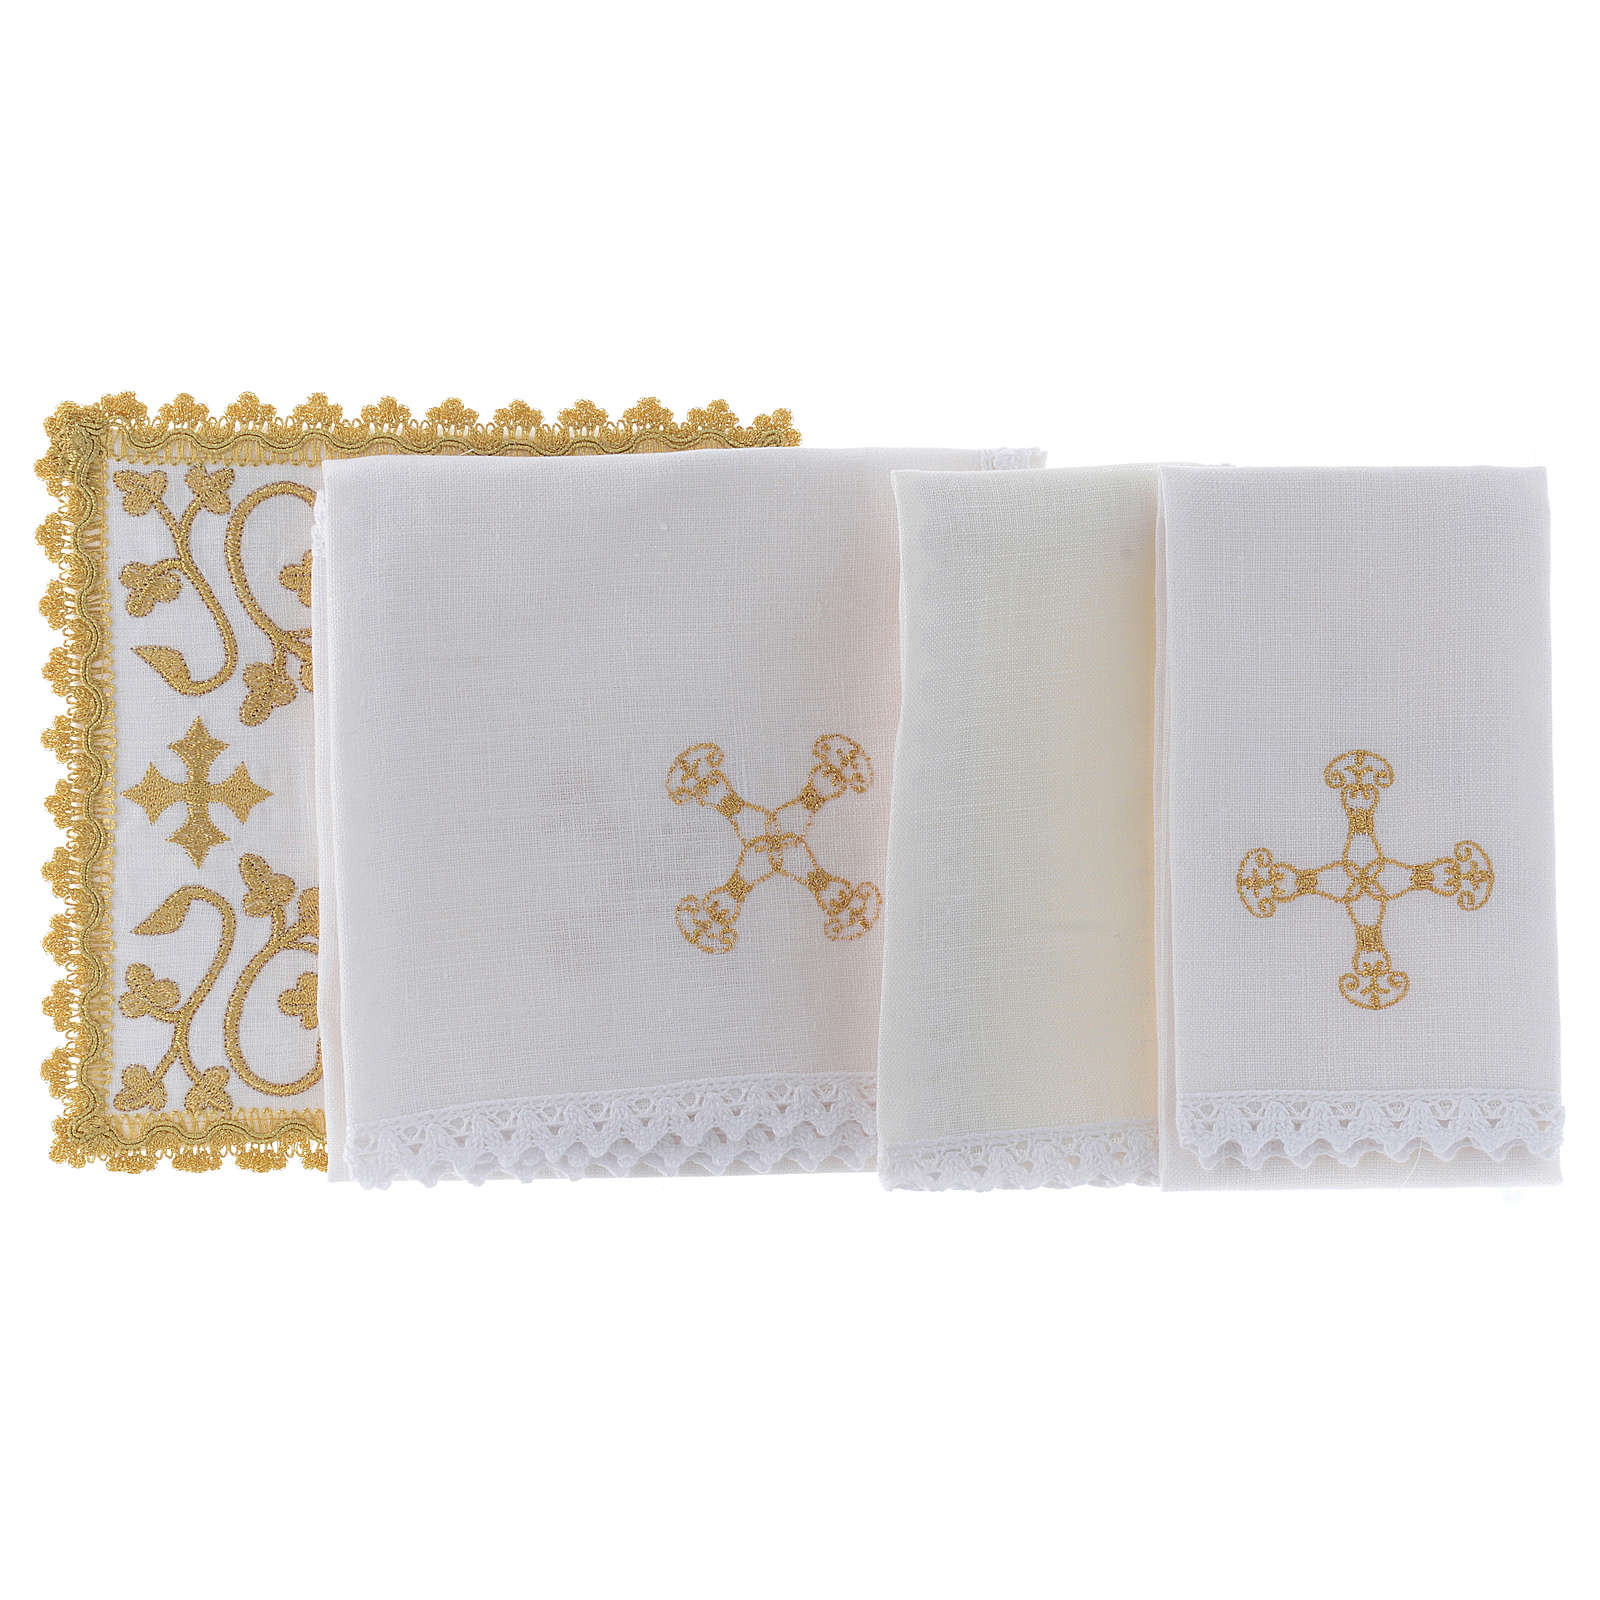 Altar linen set with embroidered golden designs 100% linen 4